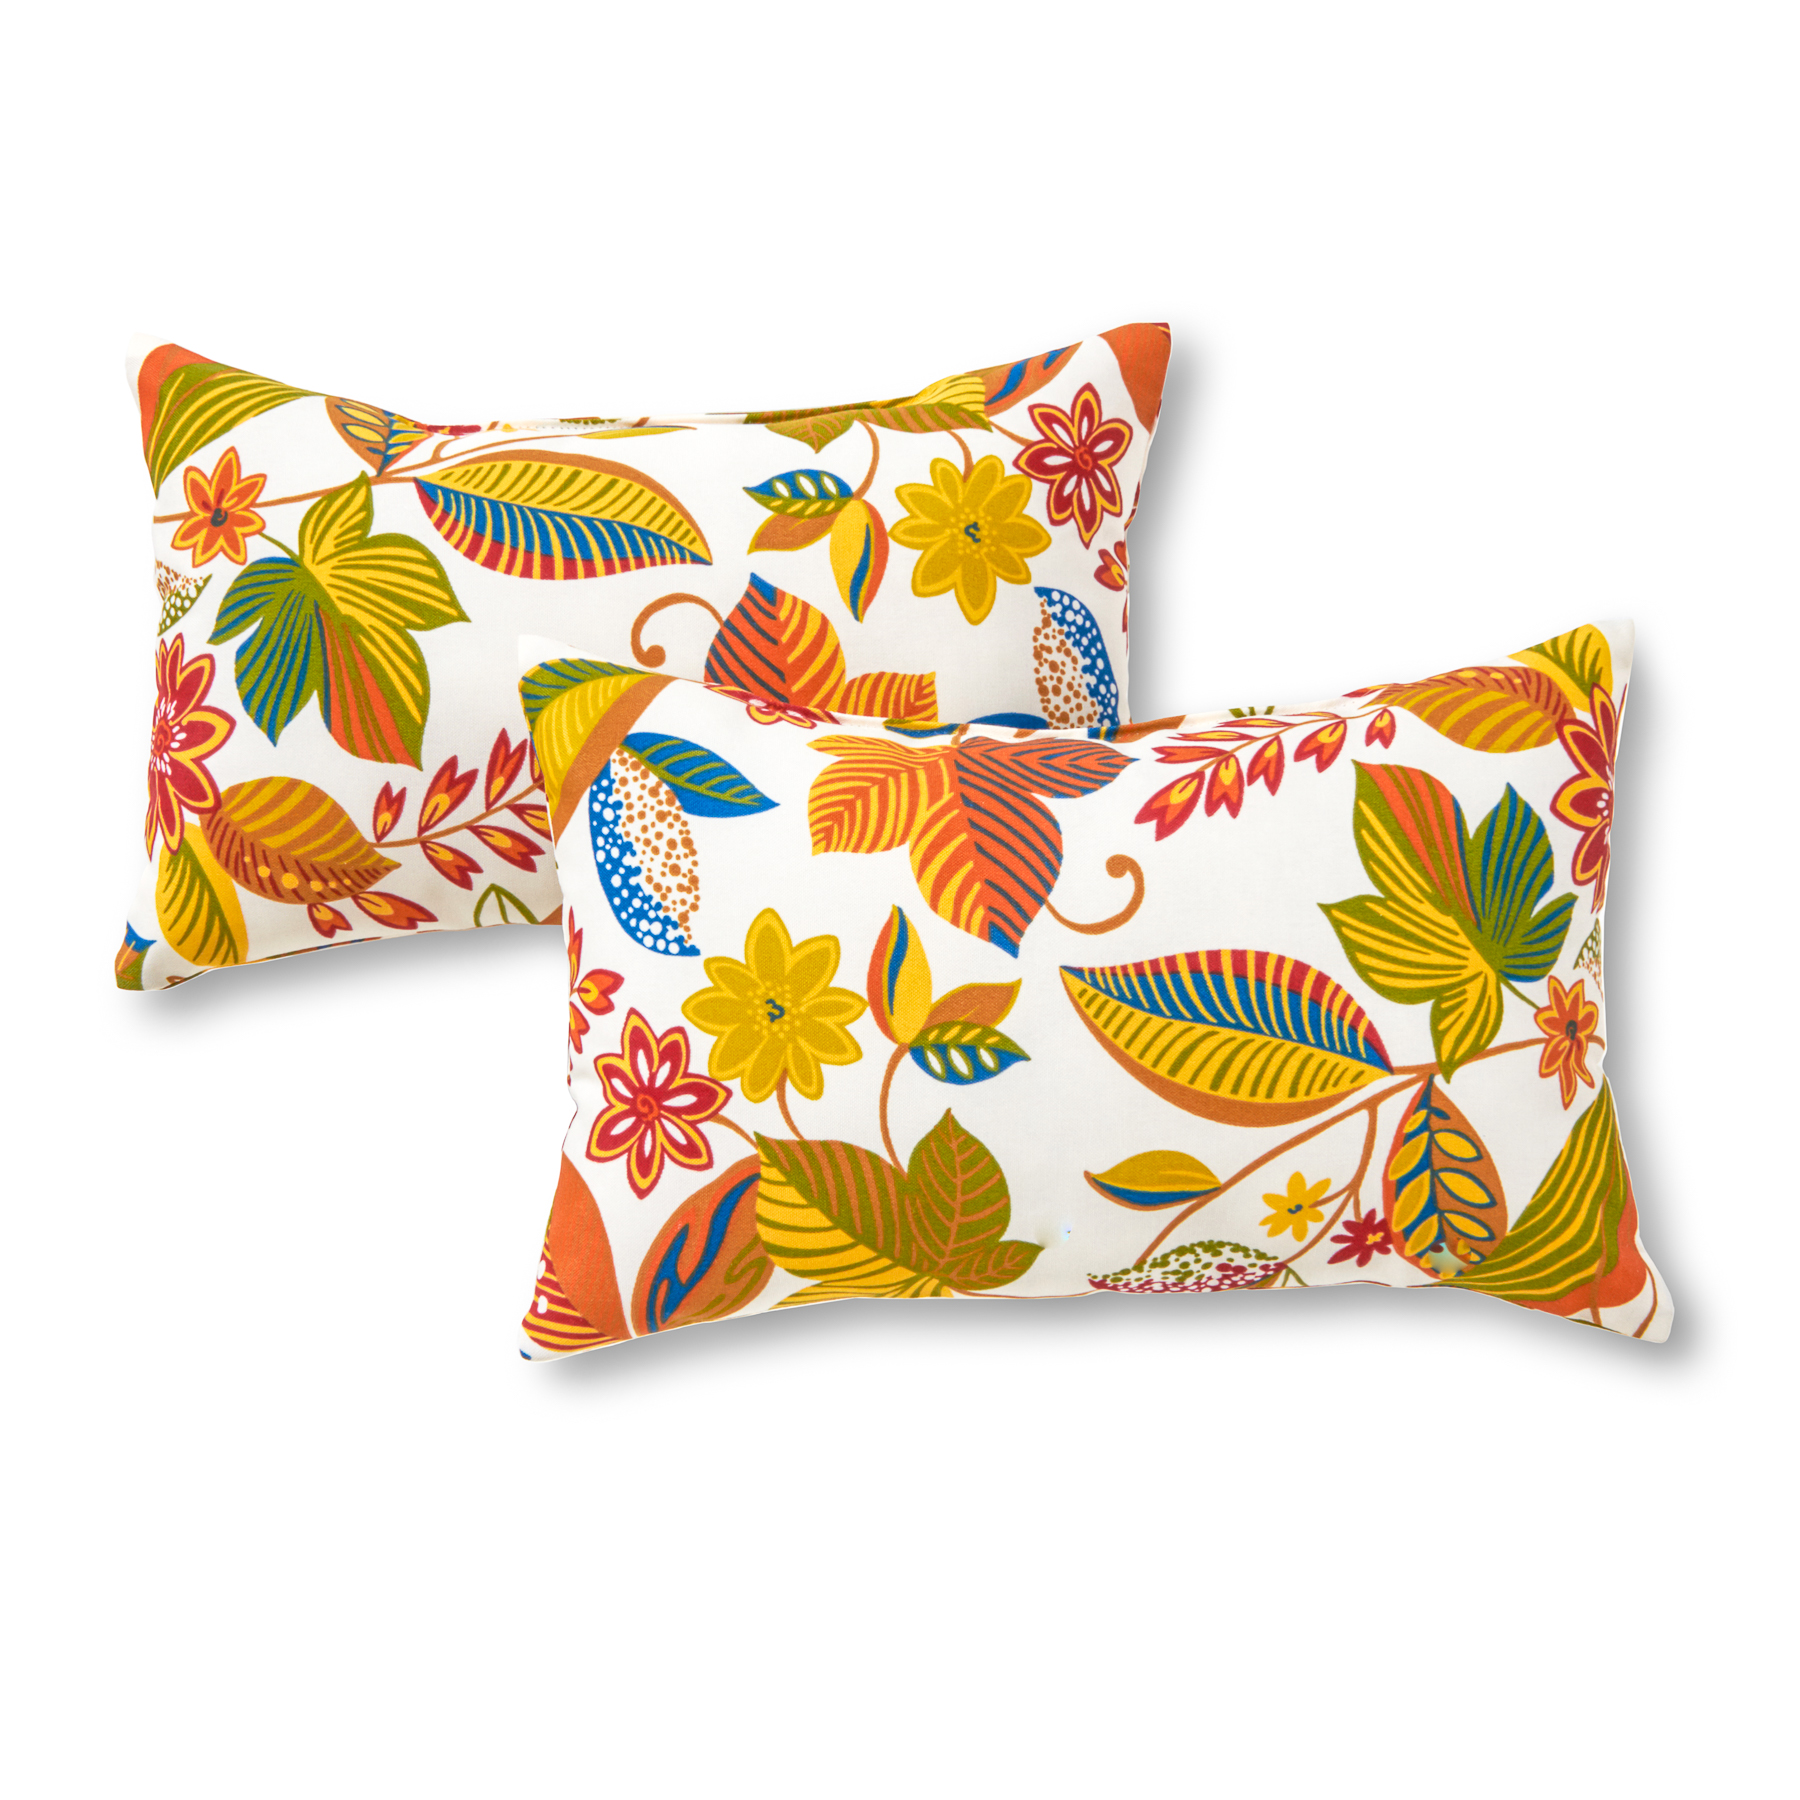 Kmart Flower Print Pillows Gardening Flower And Vegetables